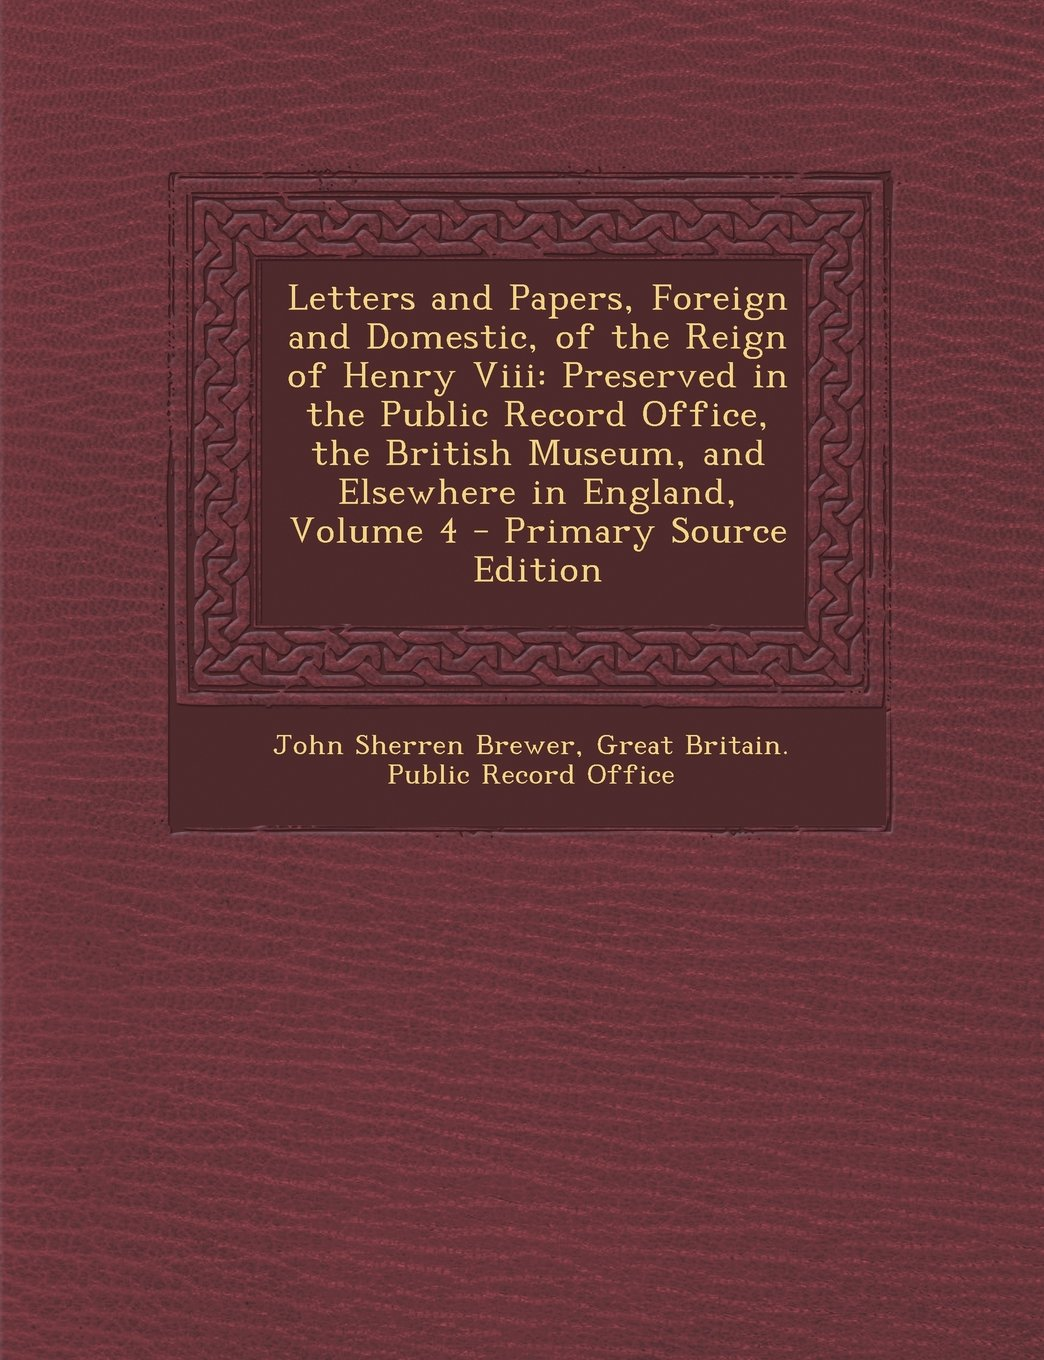 Download Letters and Papers, Foreign and Domestic, of the Reign of Henry VIII: Preserved in the Public Record Office, the British Museum, and Elsewhere in Engl pdf epub